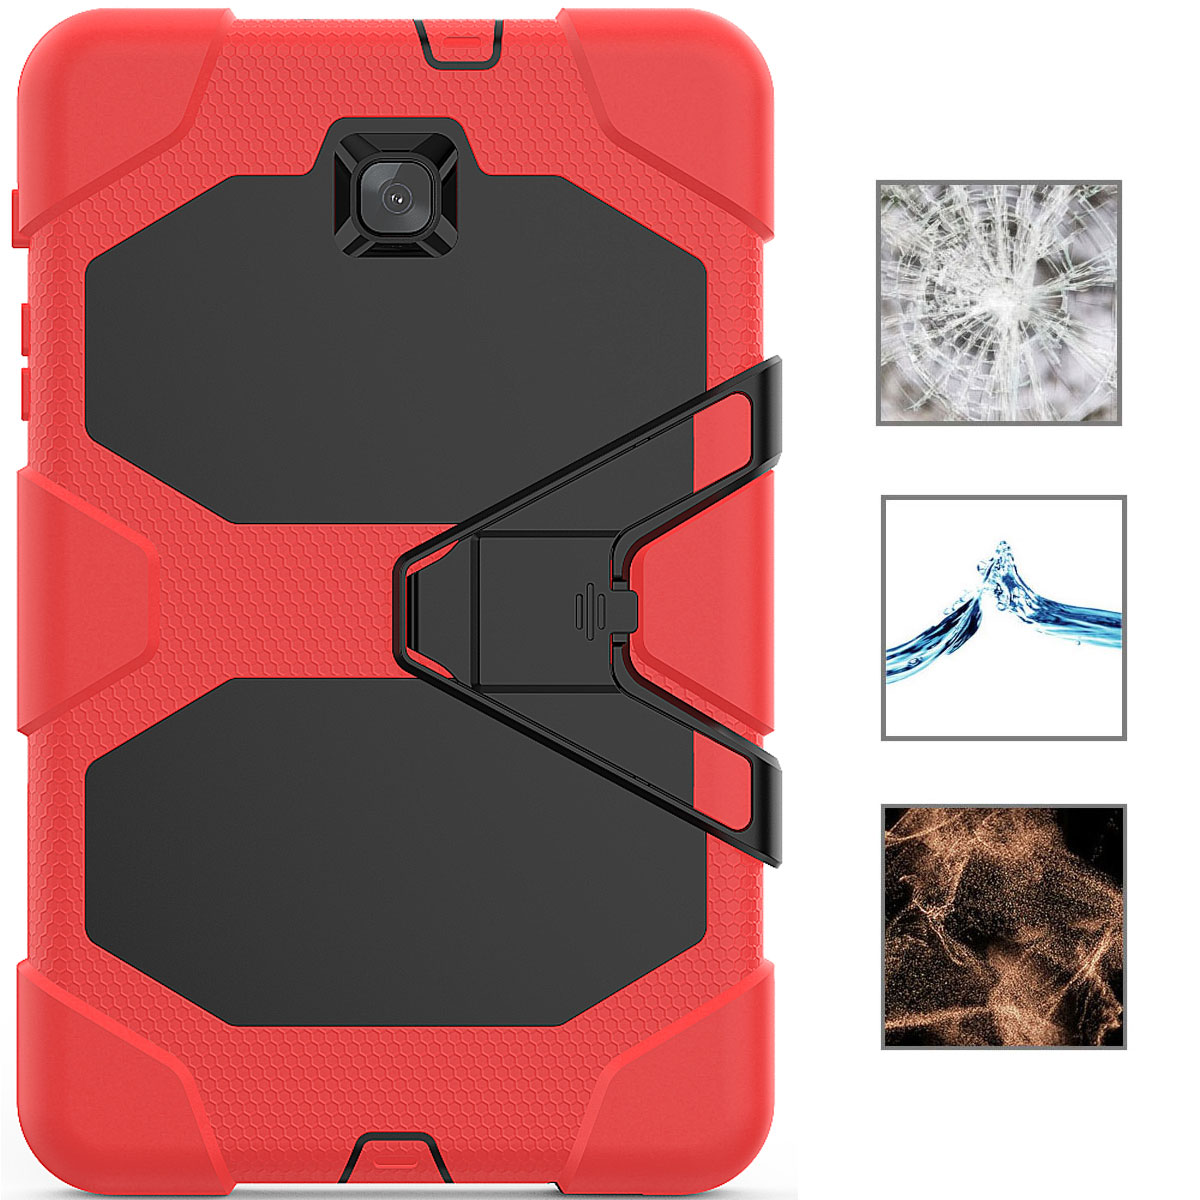 Rugged-Hard-Case-For-Samsung-Galaxy-Tab-A-8-0-2018-SM-T387-with-Screen-Protector thumbnail 66